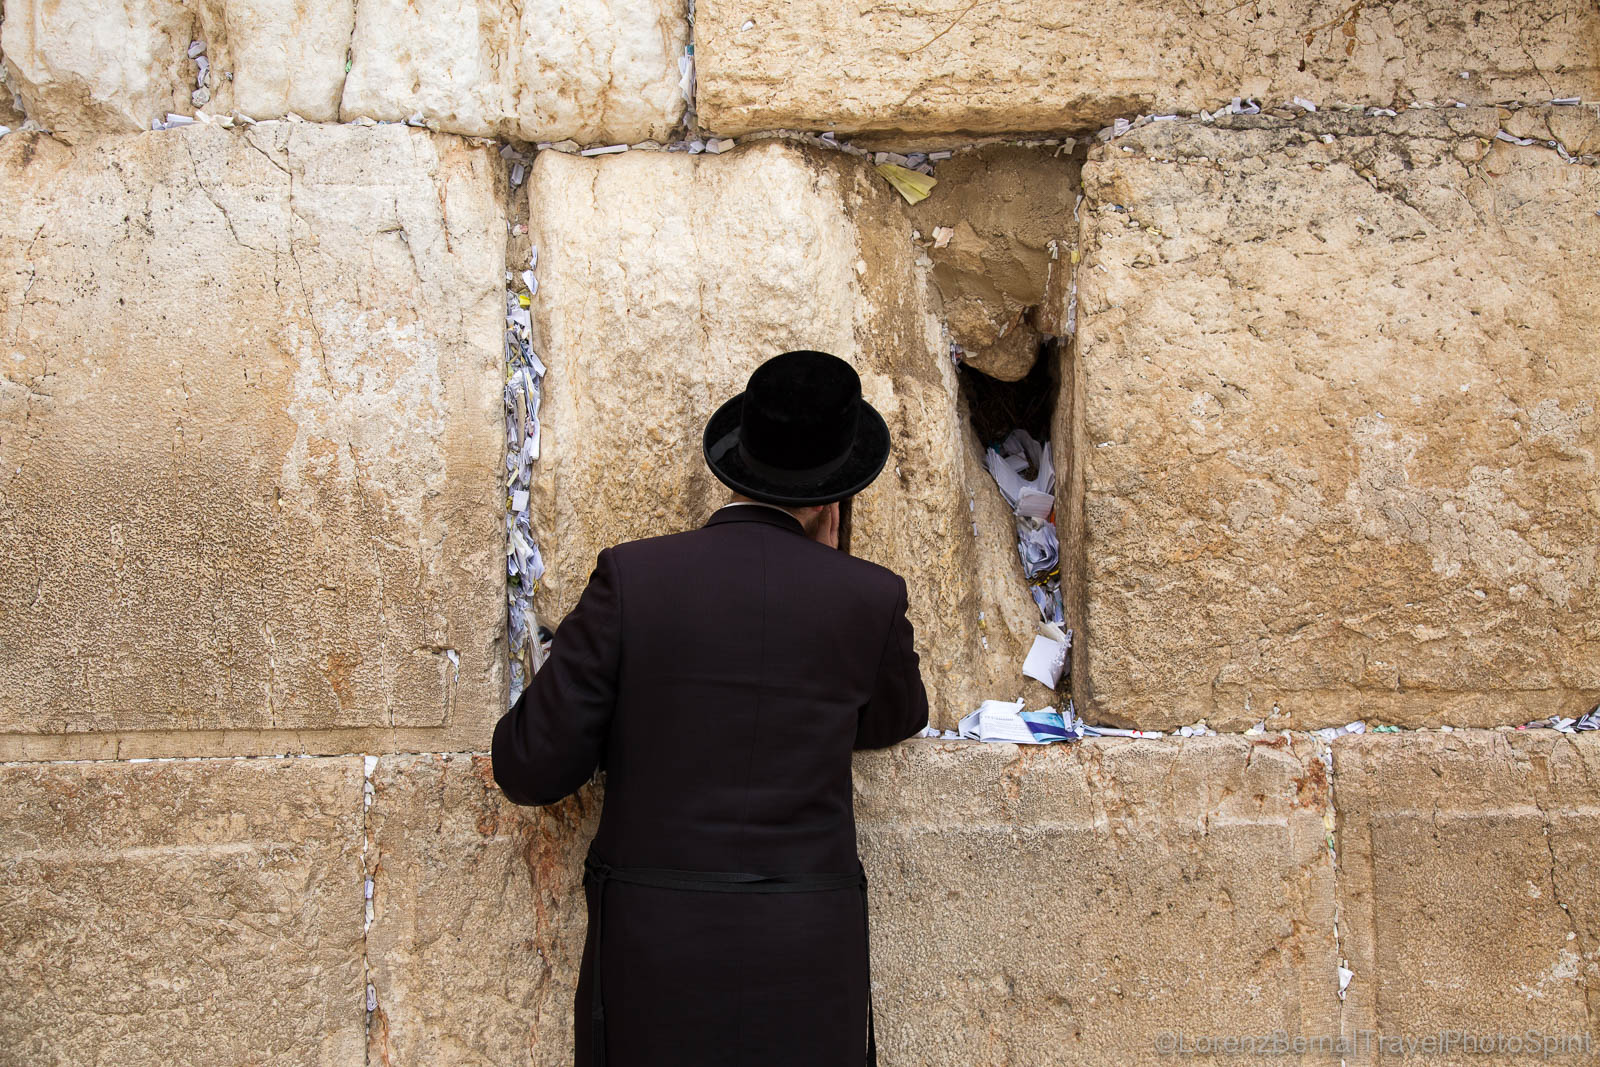 Man praying at the Wailing Wall, after having placed a paper containing his prayers to God, within the wall, Jerusalem, Israel.